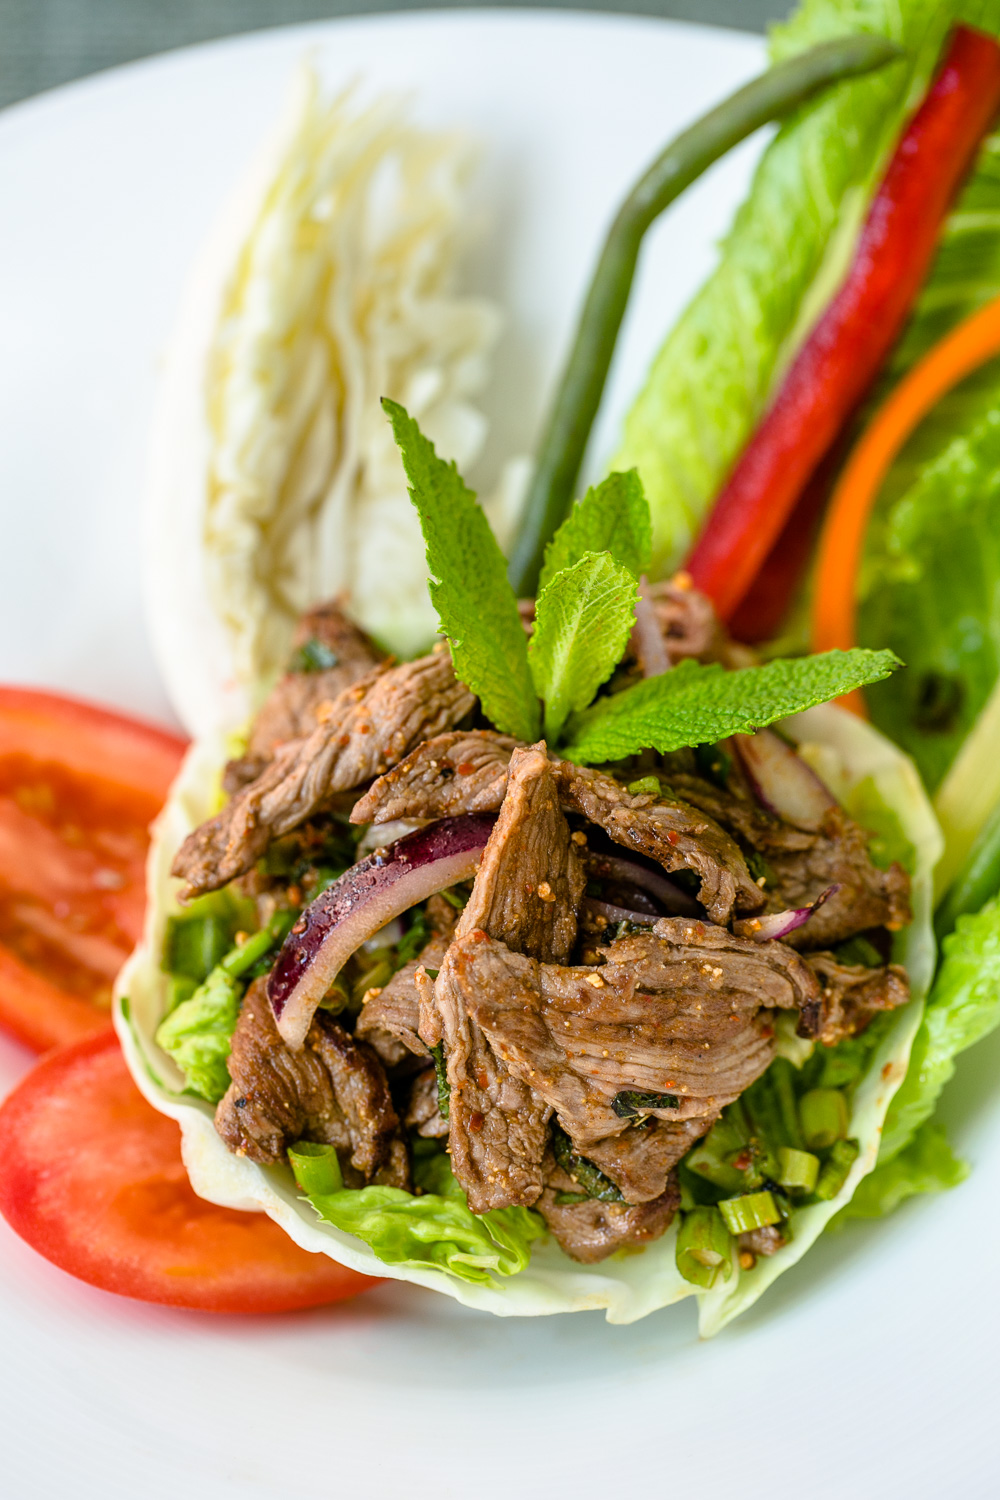 Nan-Thai-Fine-Dining-Beef-Salad-Erik-Meadows